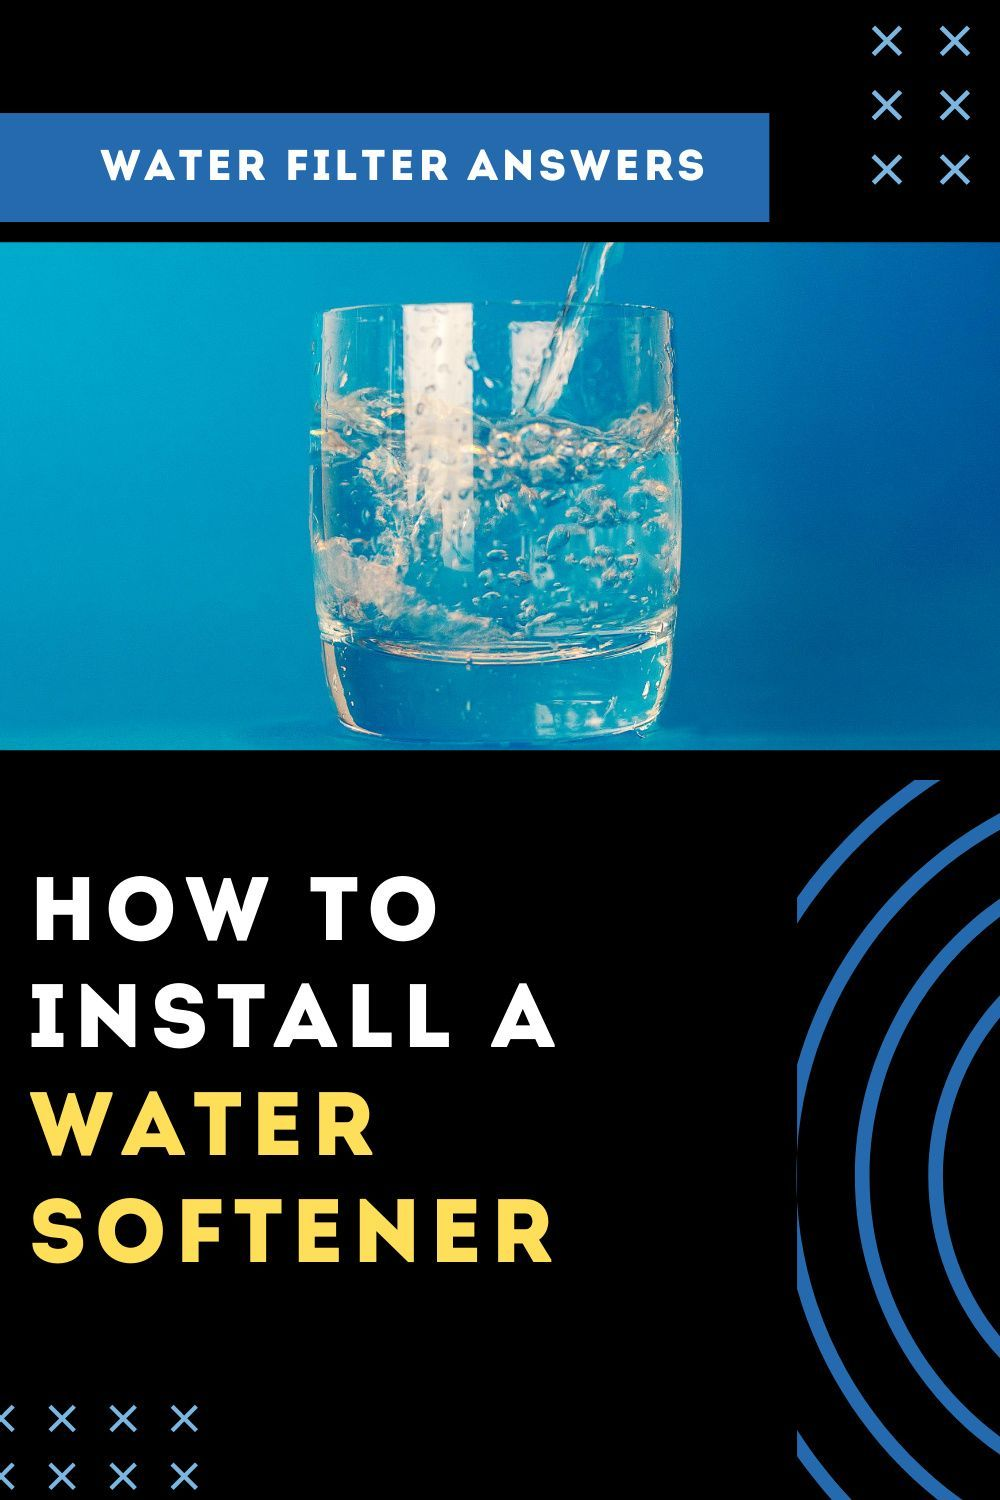 How To Install A Water Softener The Easy Way Water Filter Answers In 2020 Water Softener Water Softener Salt Water Filter